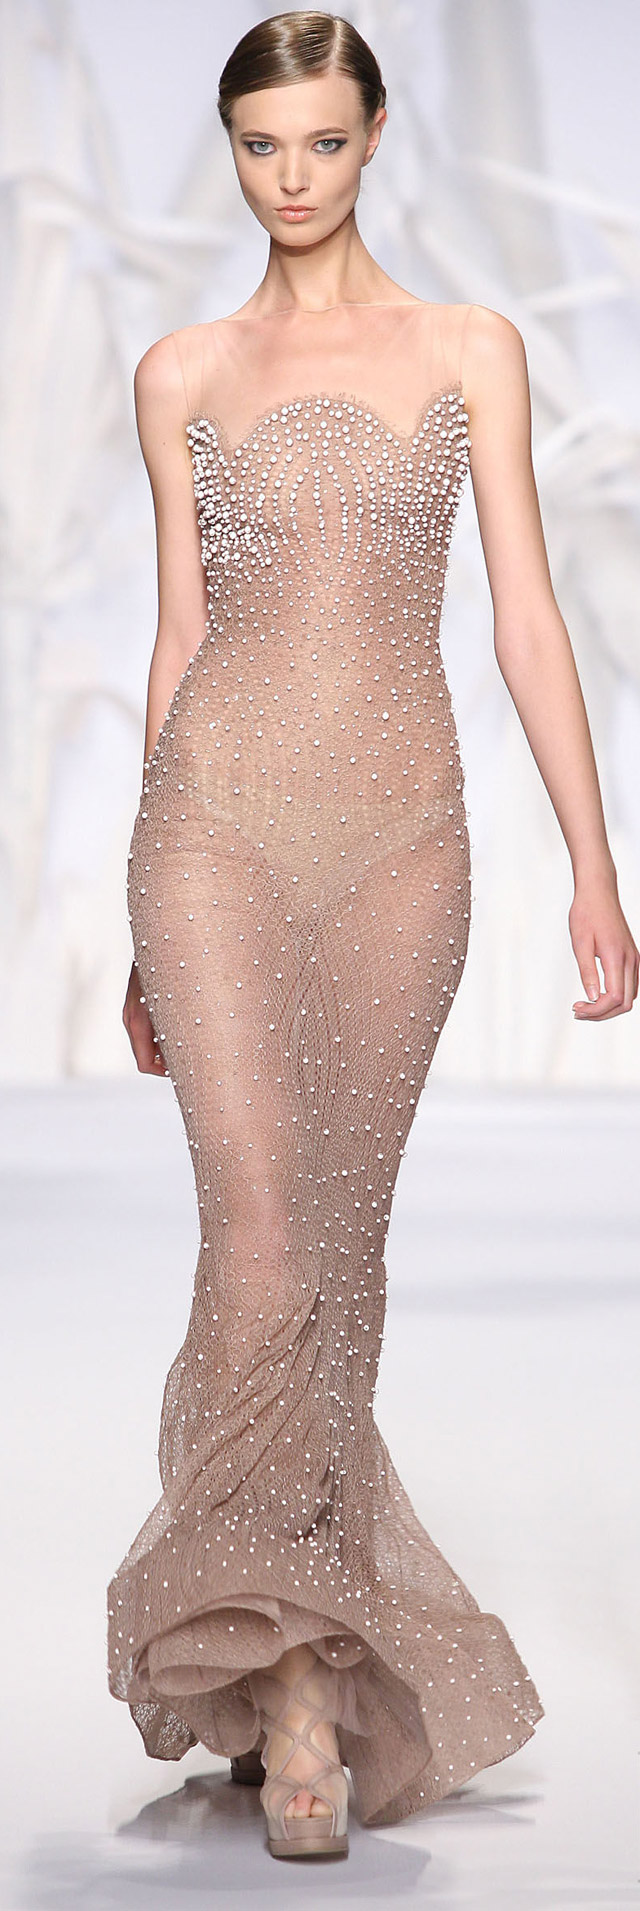 Abed Mahfouz Haute Couture Fall Winter 2013 2014